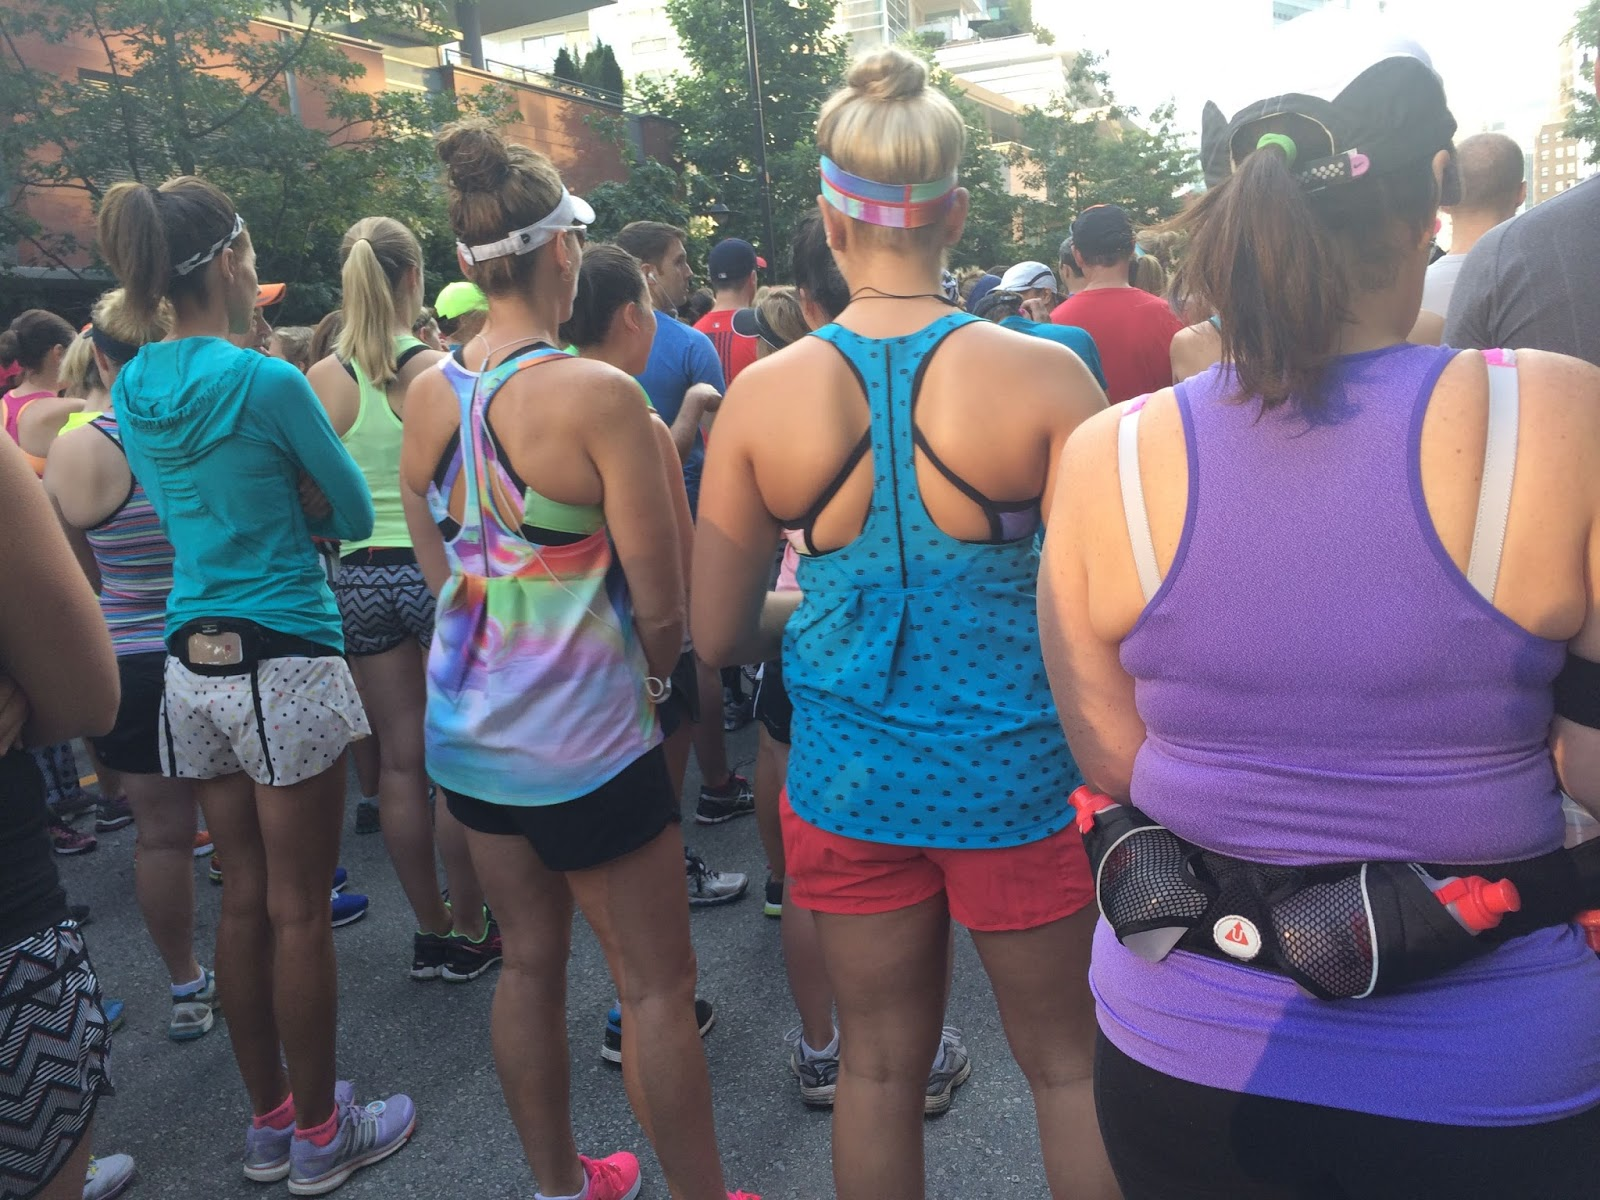 lululemon 2014 Sea Wheeze half marathon start corrals